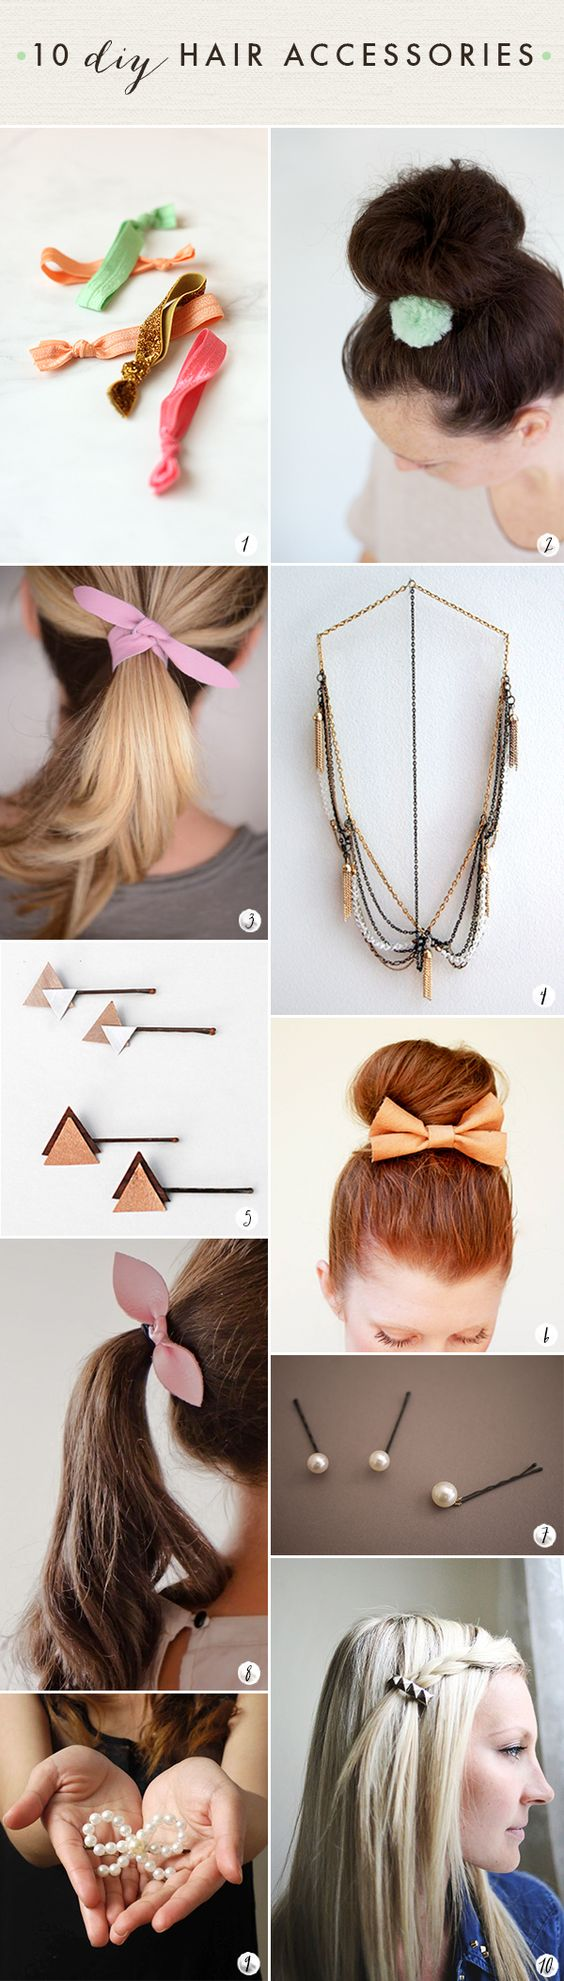 things to sell lovely things and diy hair accessories on